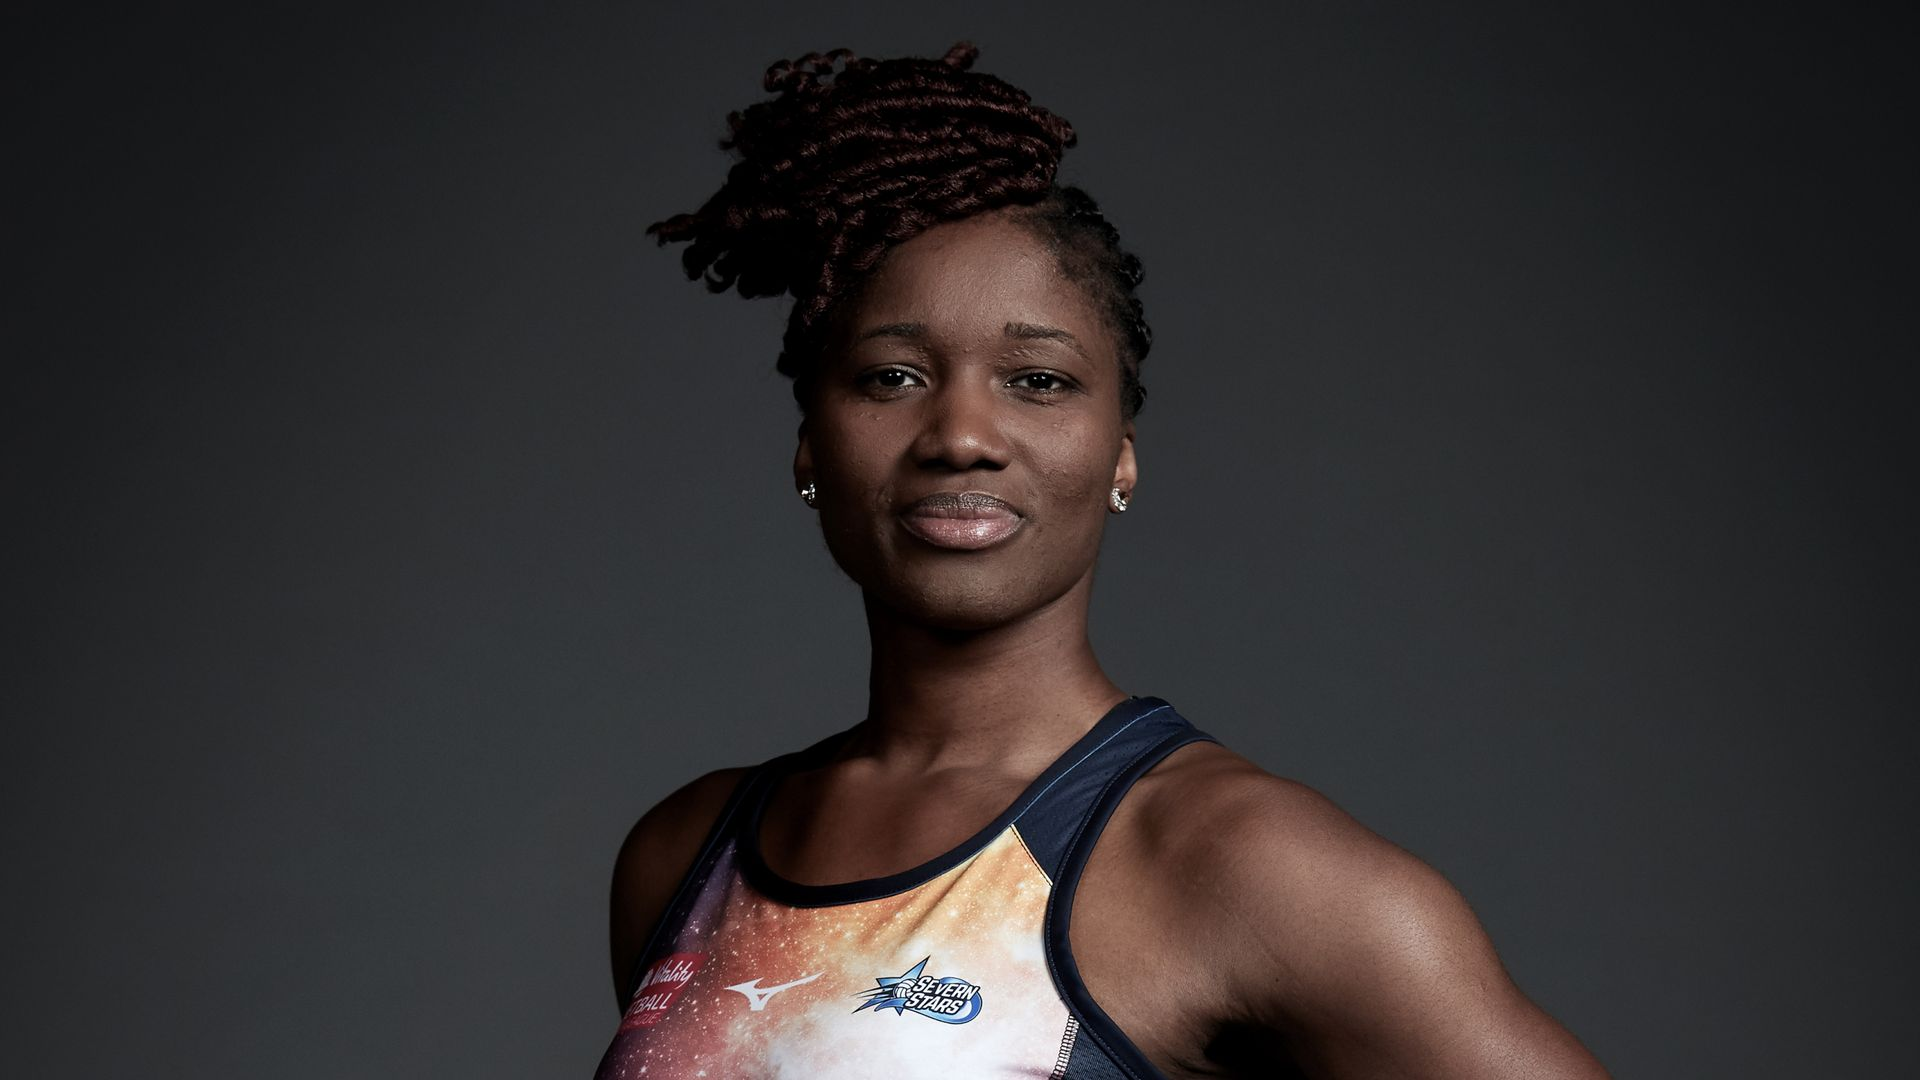 Agbeze on emotions, connections and Comm Games